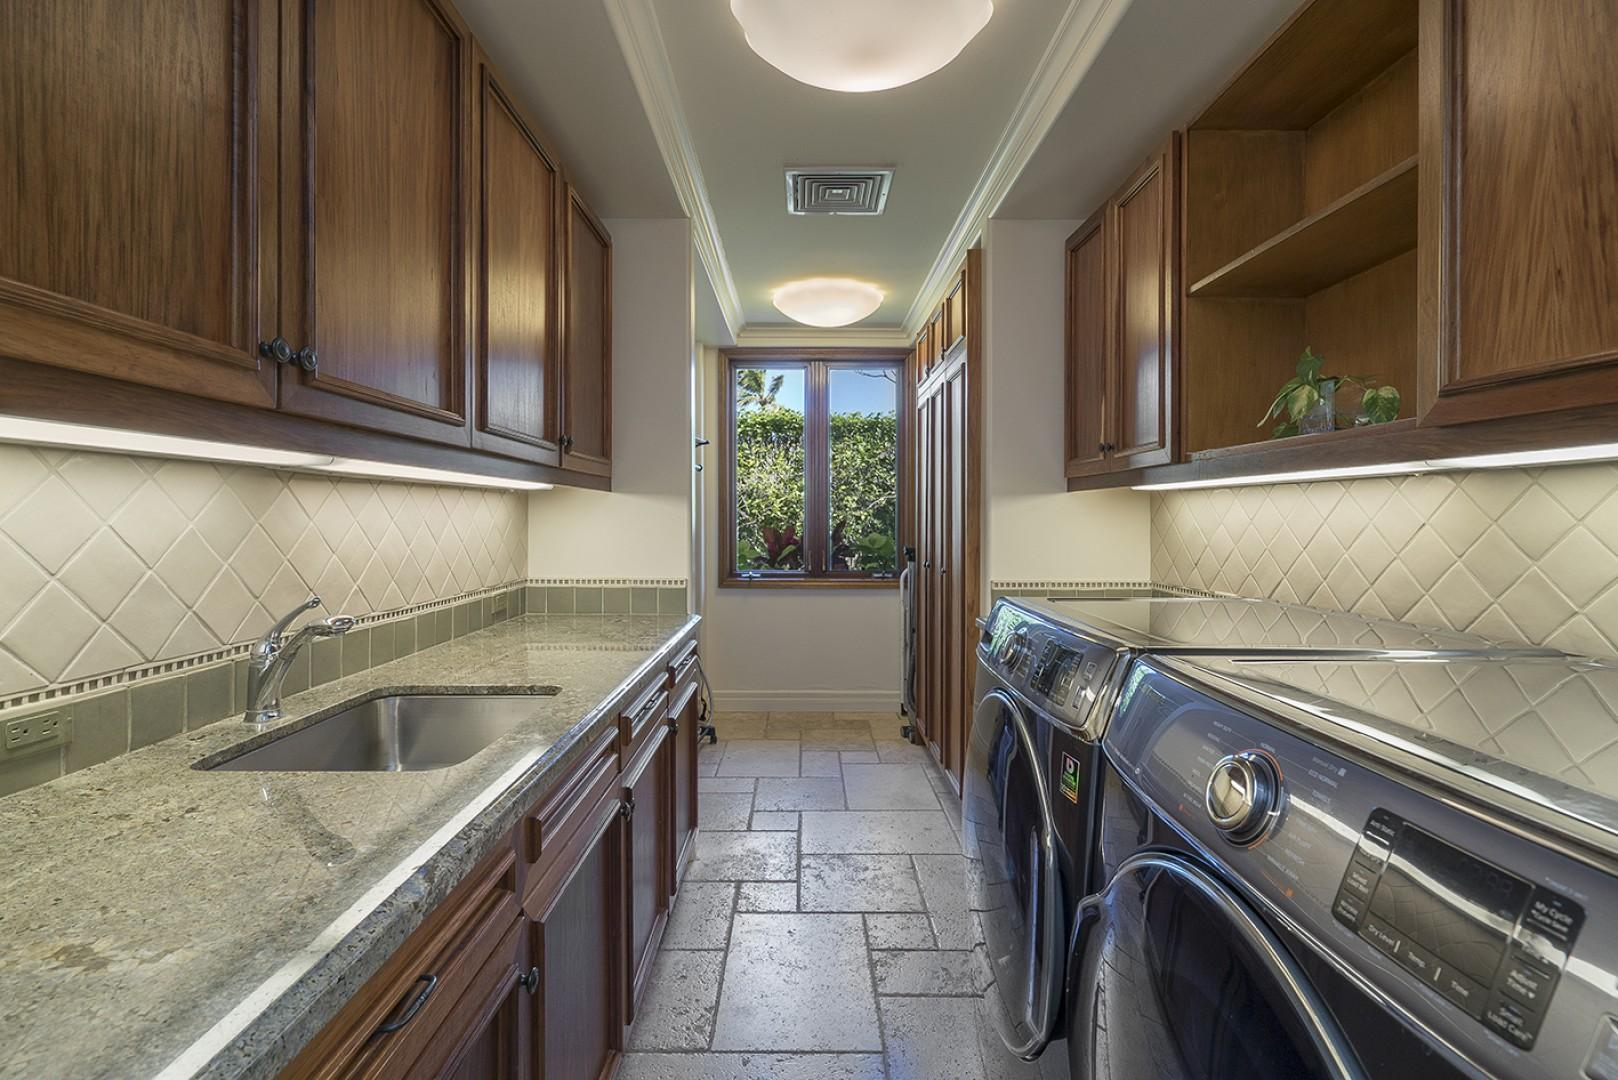 Main house: Laundry Room